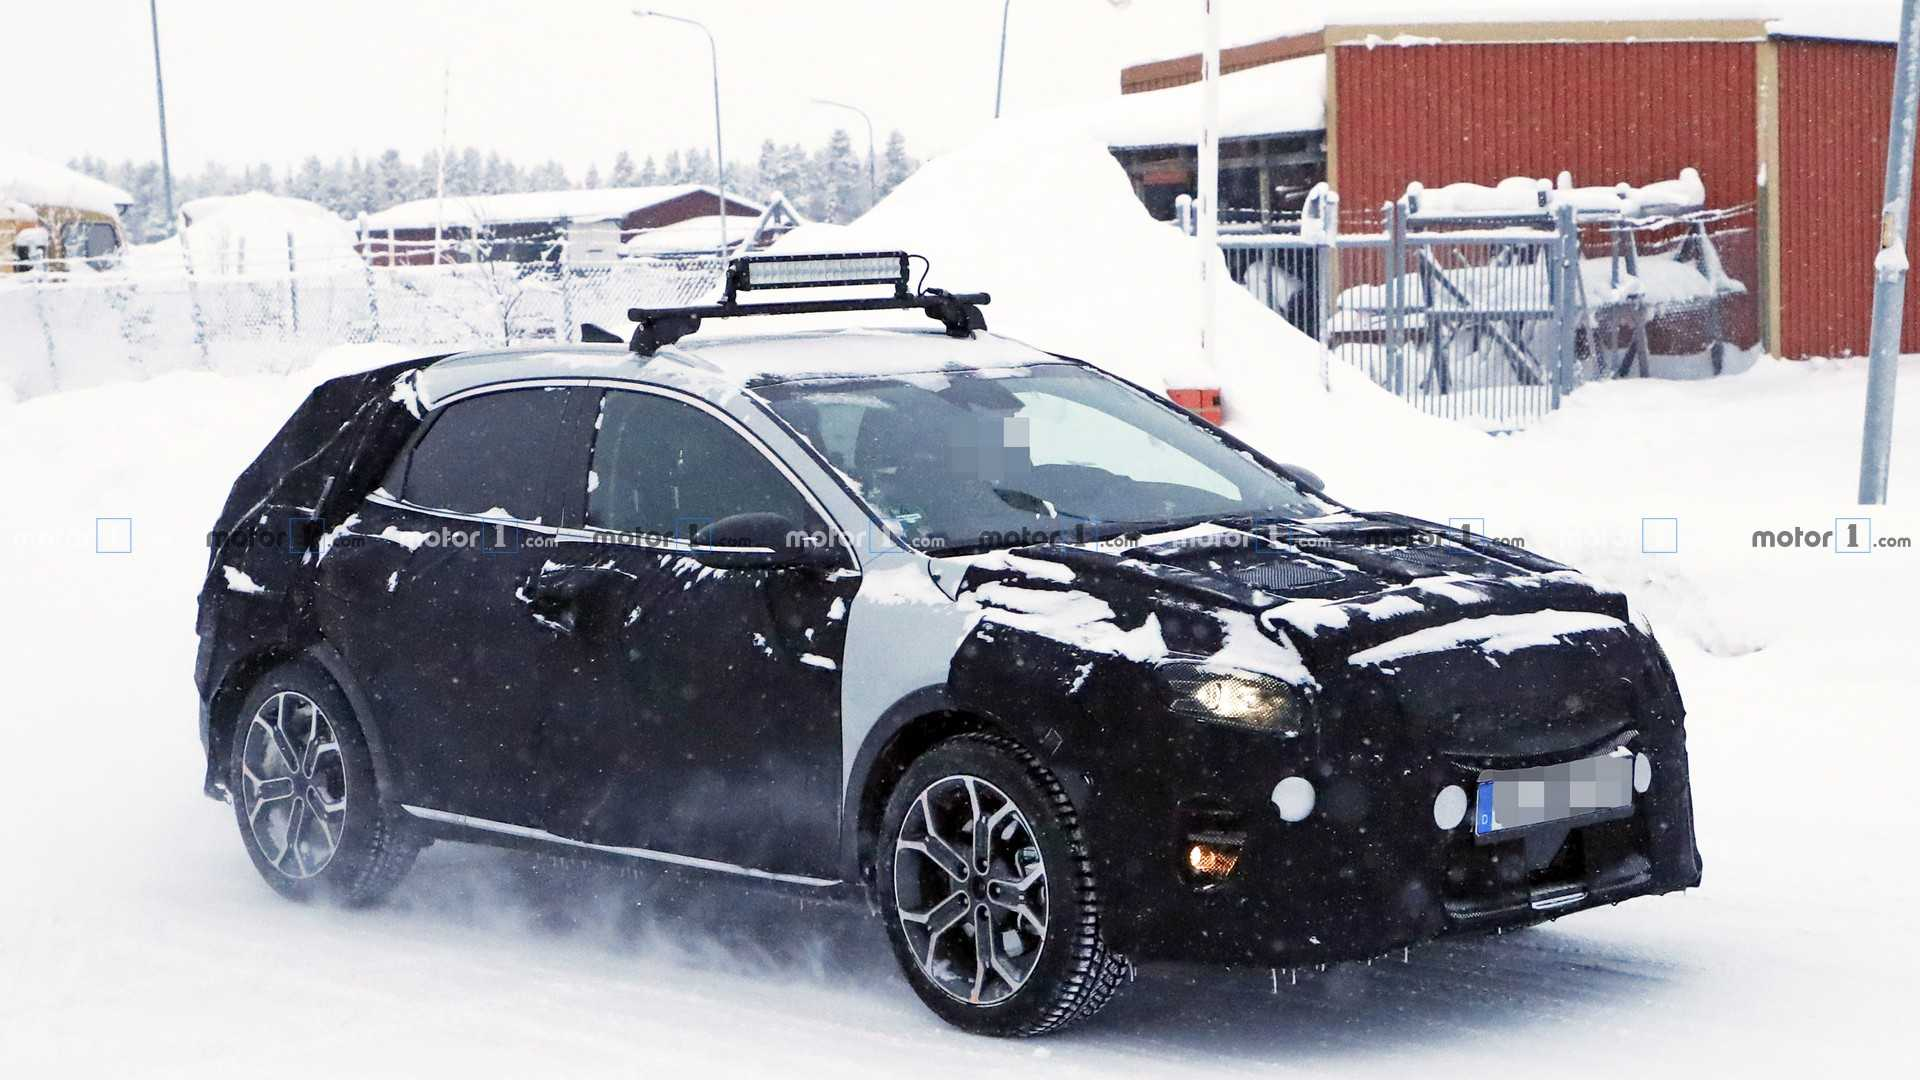 2019 Kia XCeed Crossover Spied Ahead Of Geneva Debut [UPDATE]